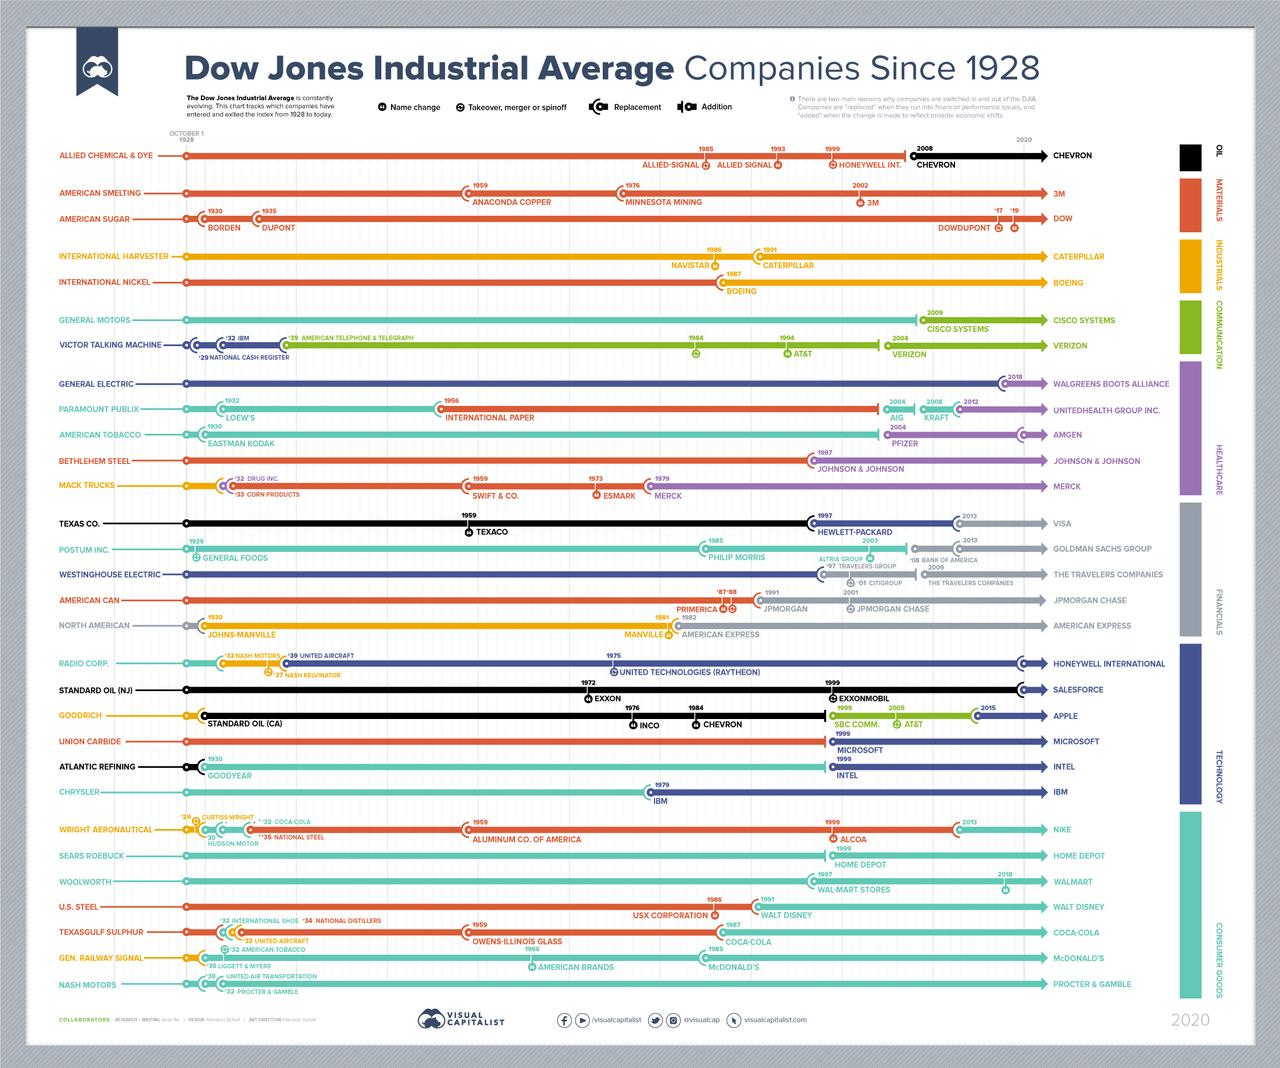 https://www.zerohedge.com/s3/files/inline-images/dow-jones-industrial-average-companies-full.jpg?itok=VF_l2dw2